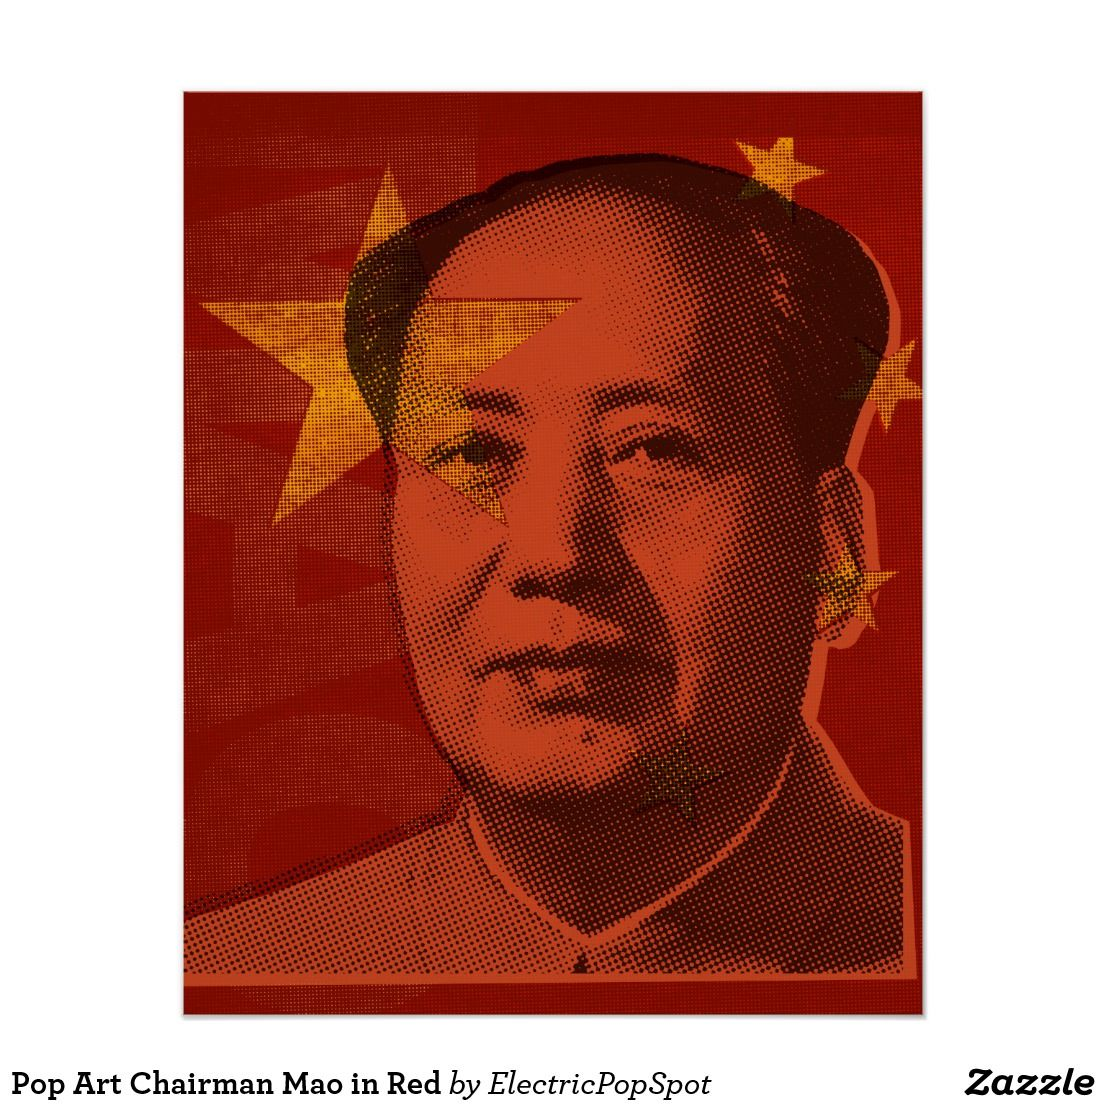 Pop Art Chairman Mao In Red Poster Zazzle Com Pop Art Design Art Design Art